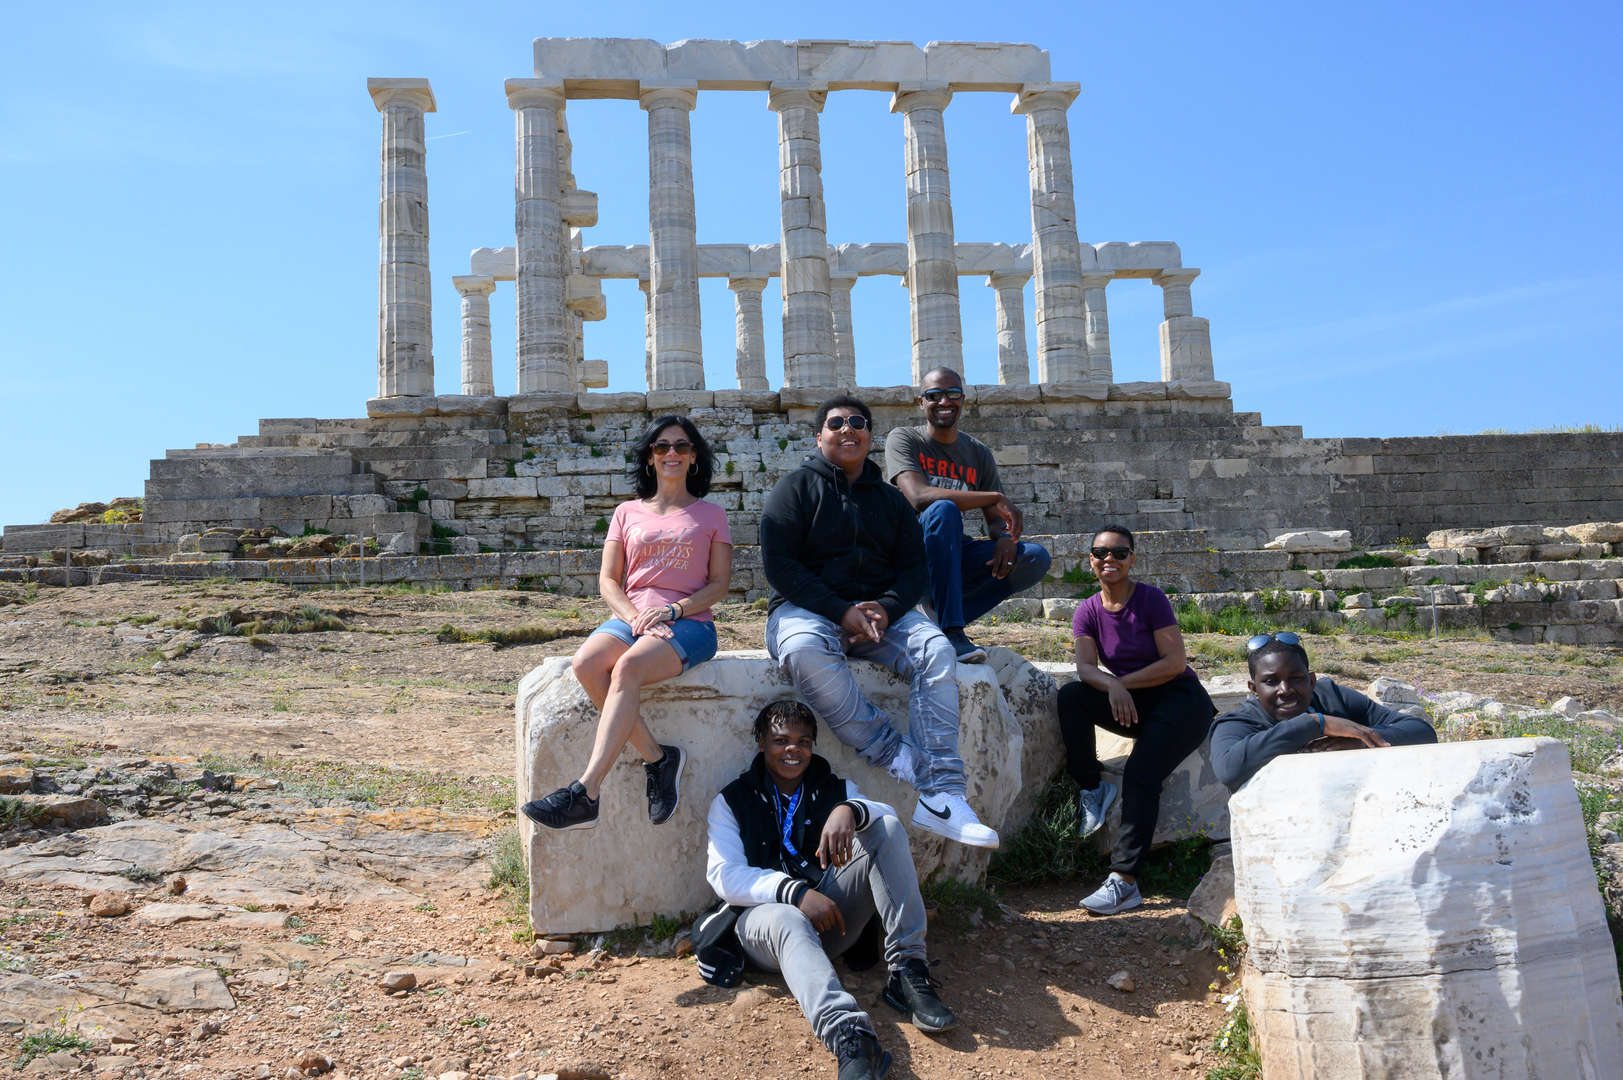 Participants posing in front of an ancient temple while on a trip to Greece